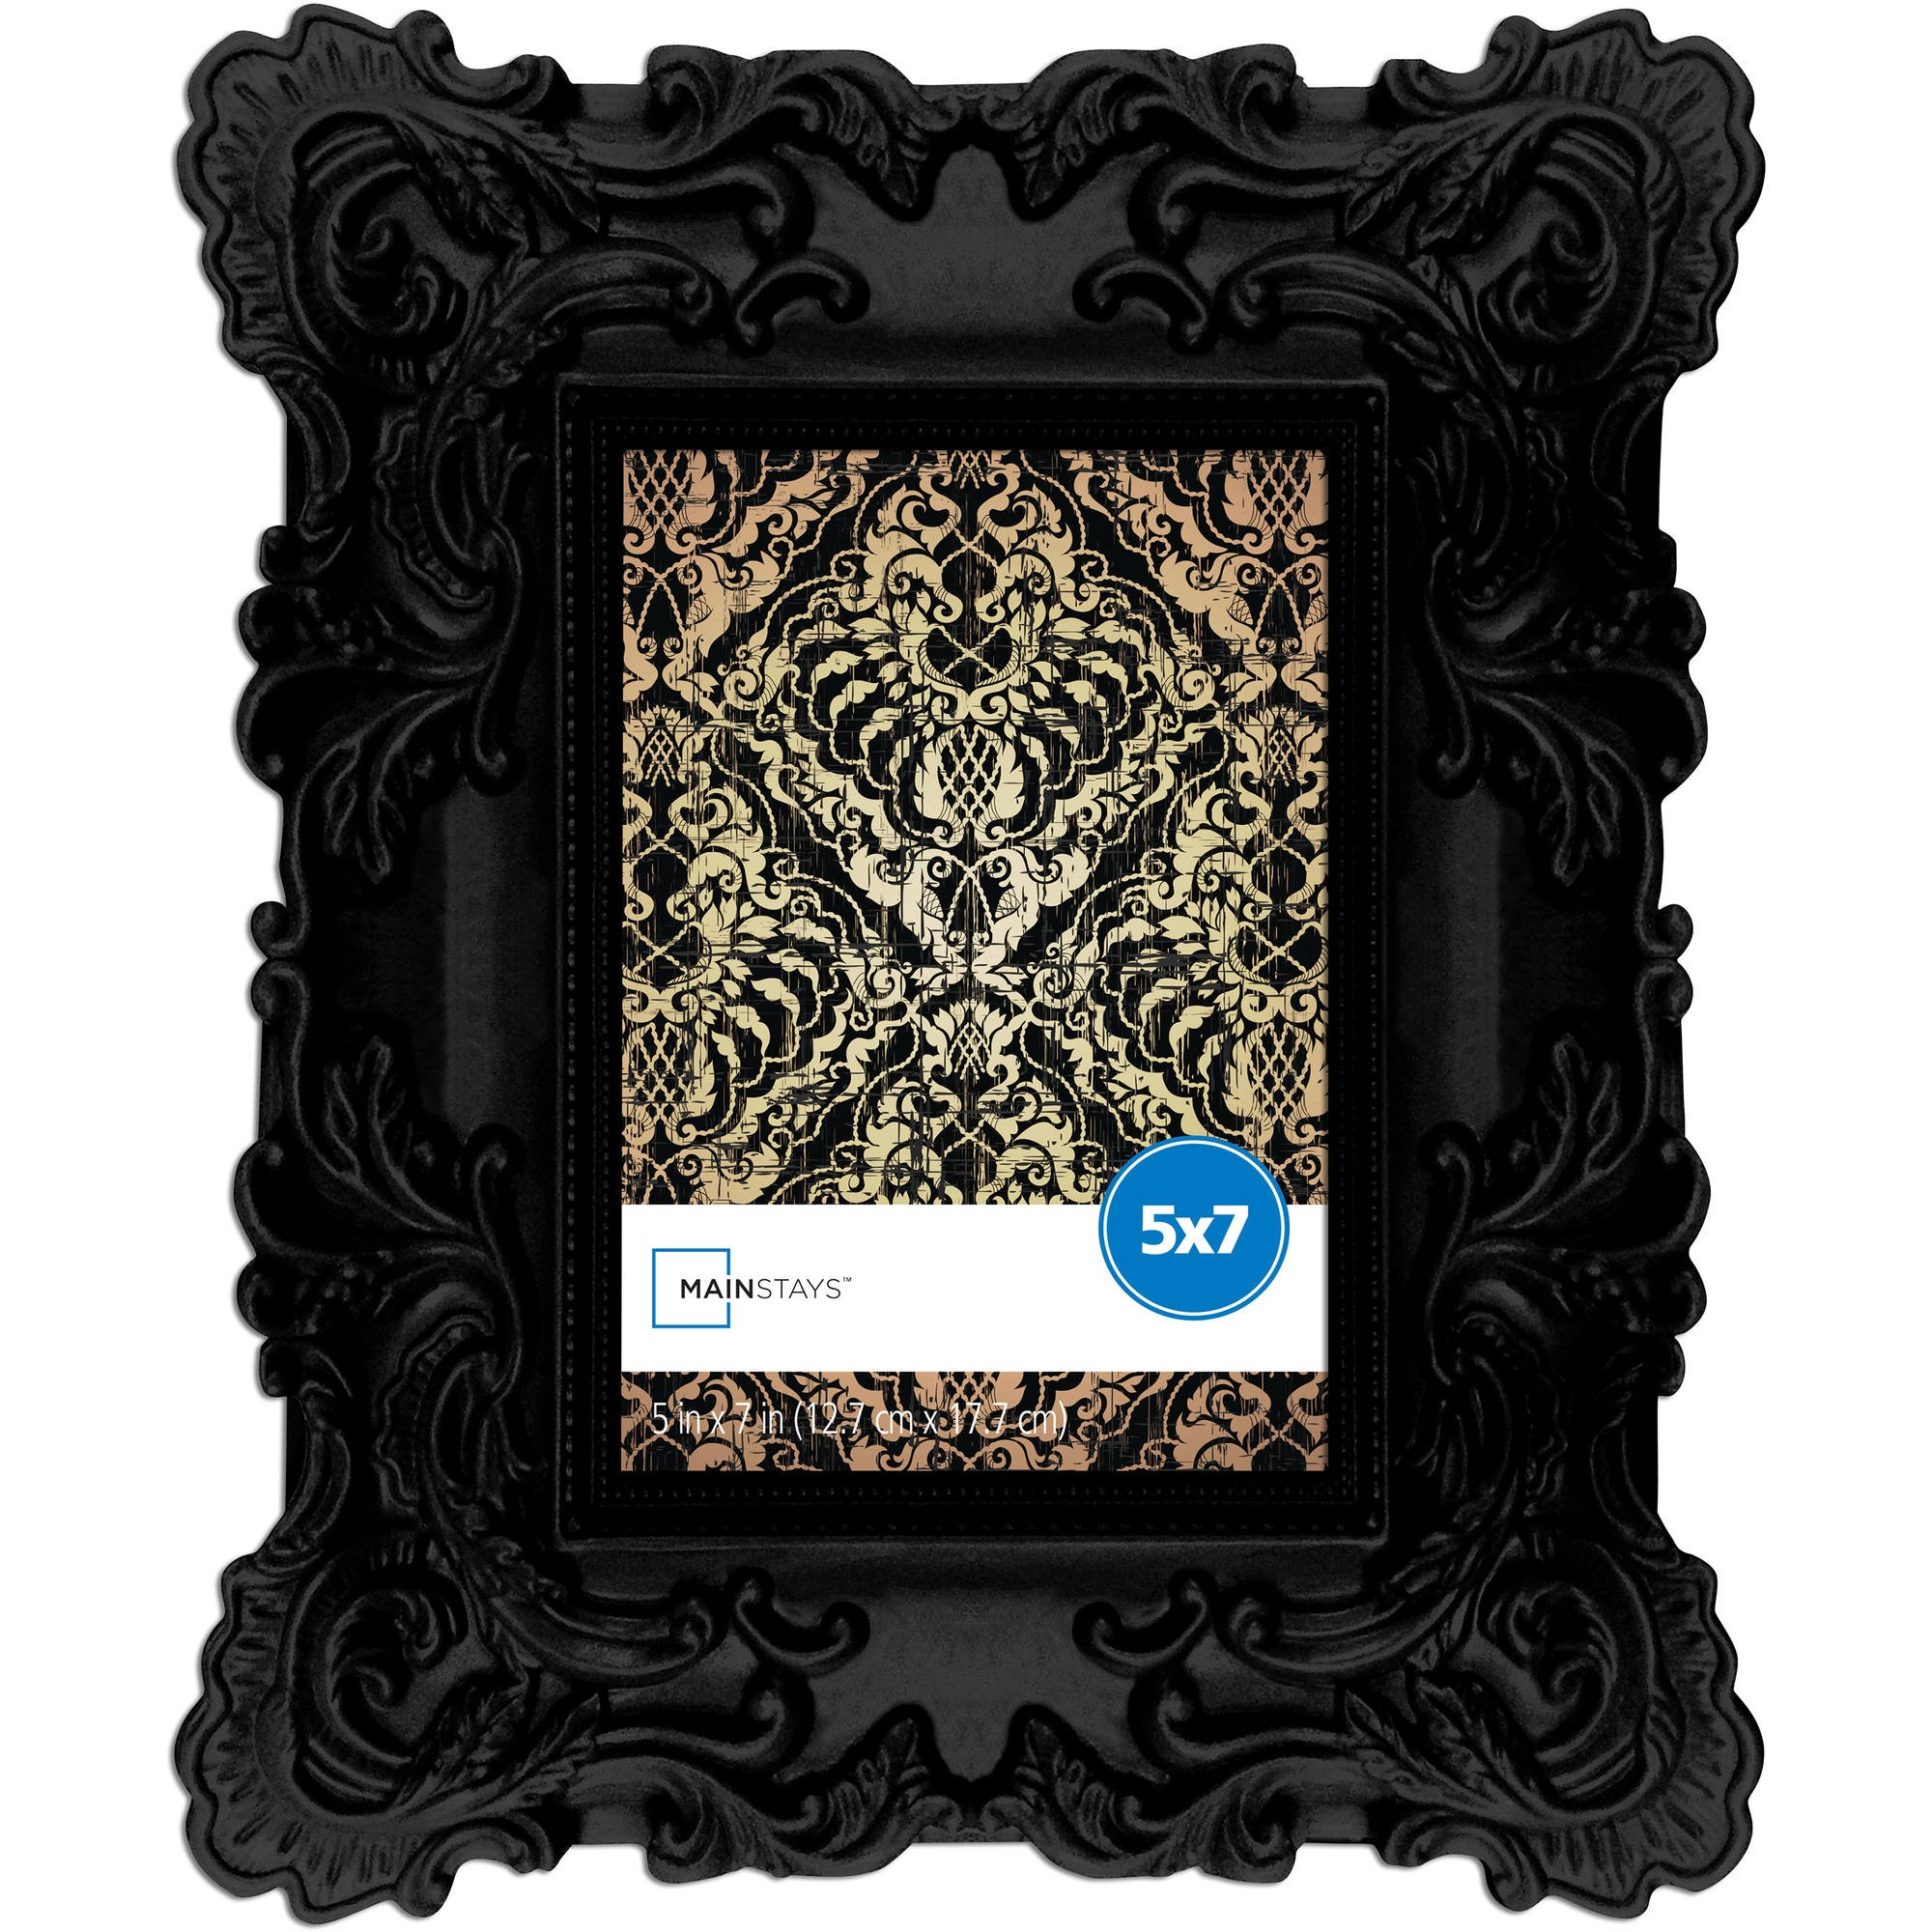 Mainstays 5x7 Chunky Baroque Picture Frame, Black